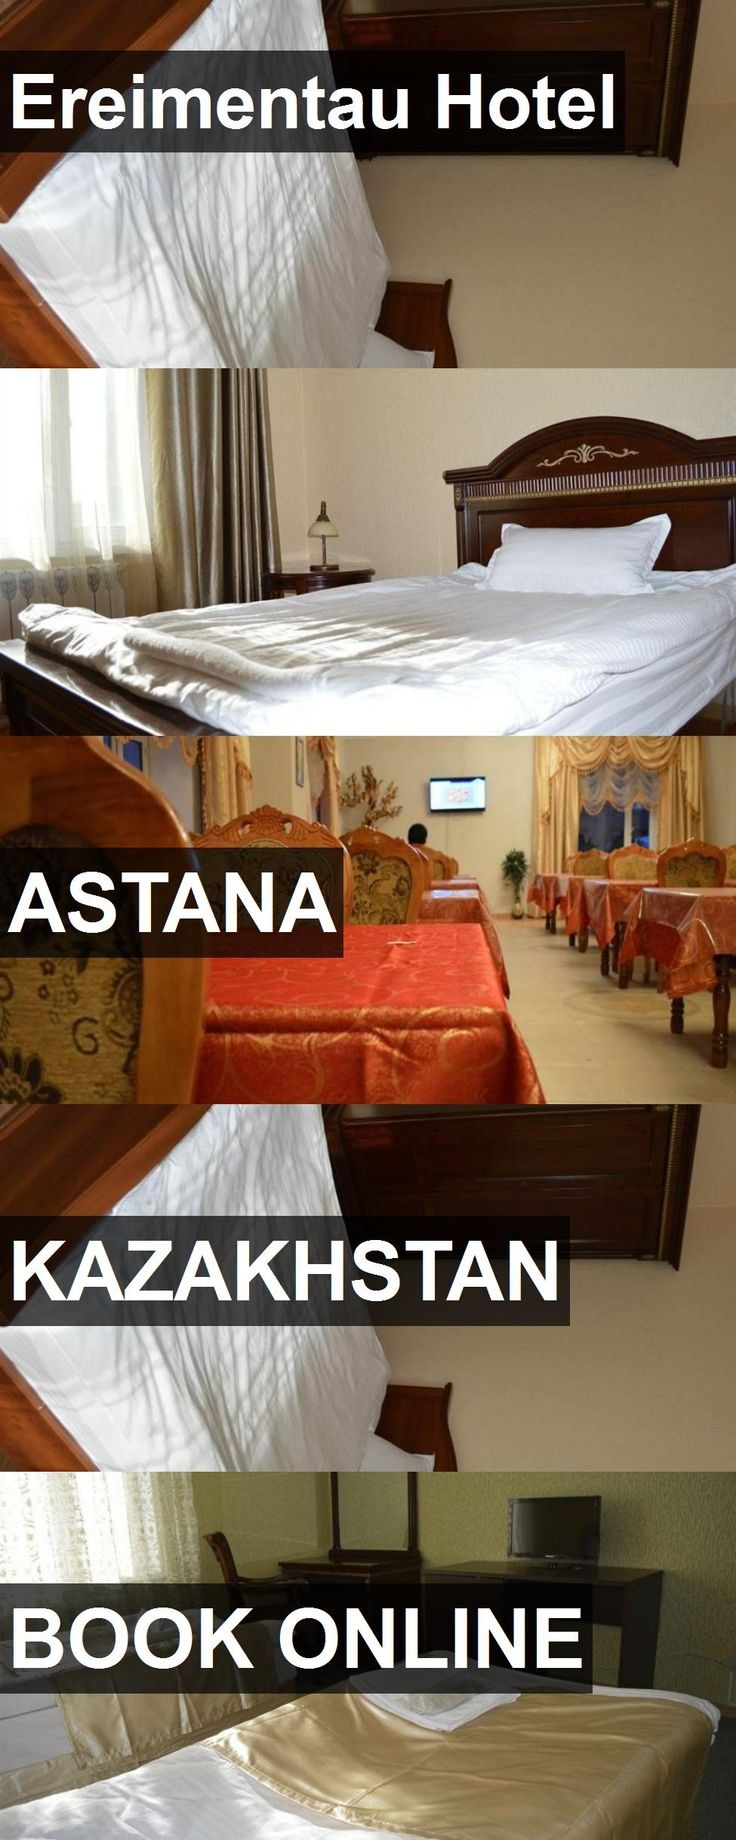 Hotel Ereimentau Hotel in Astana, Kazakhstan. For more information, photos, reviews and best prices please follow the link. #Kazakhstan #Astana #EreimentauHotel #hotel #travel #vacation